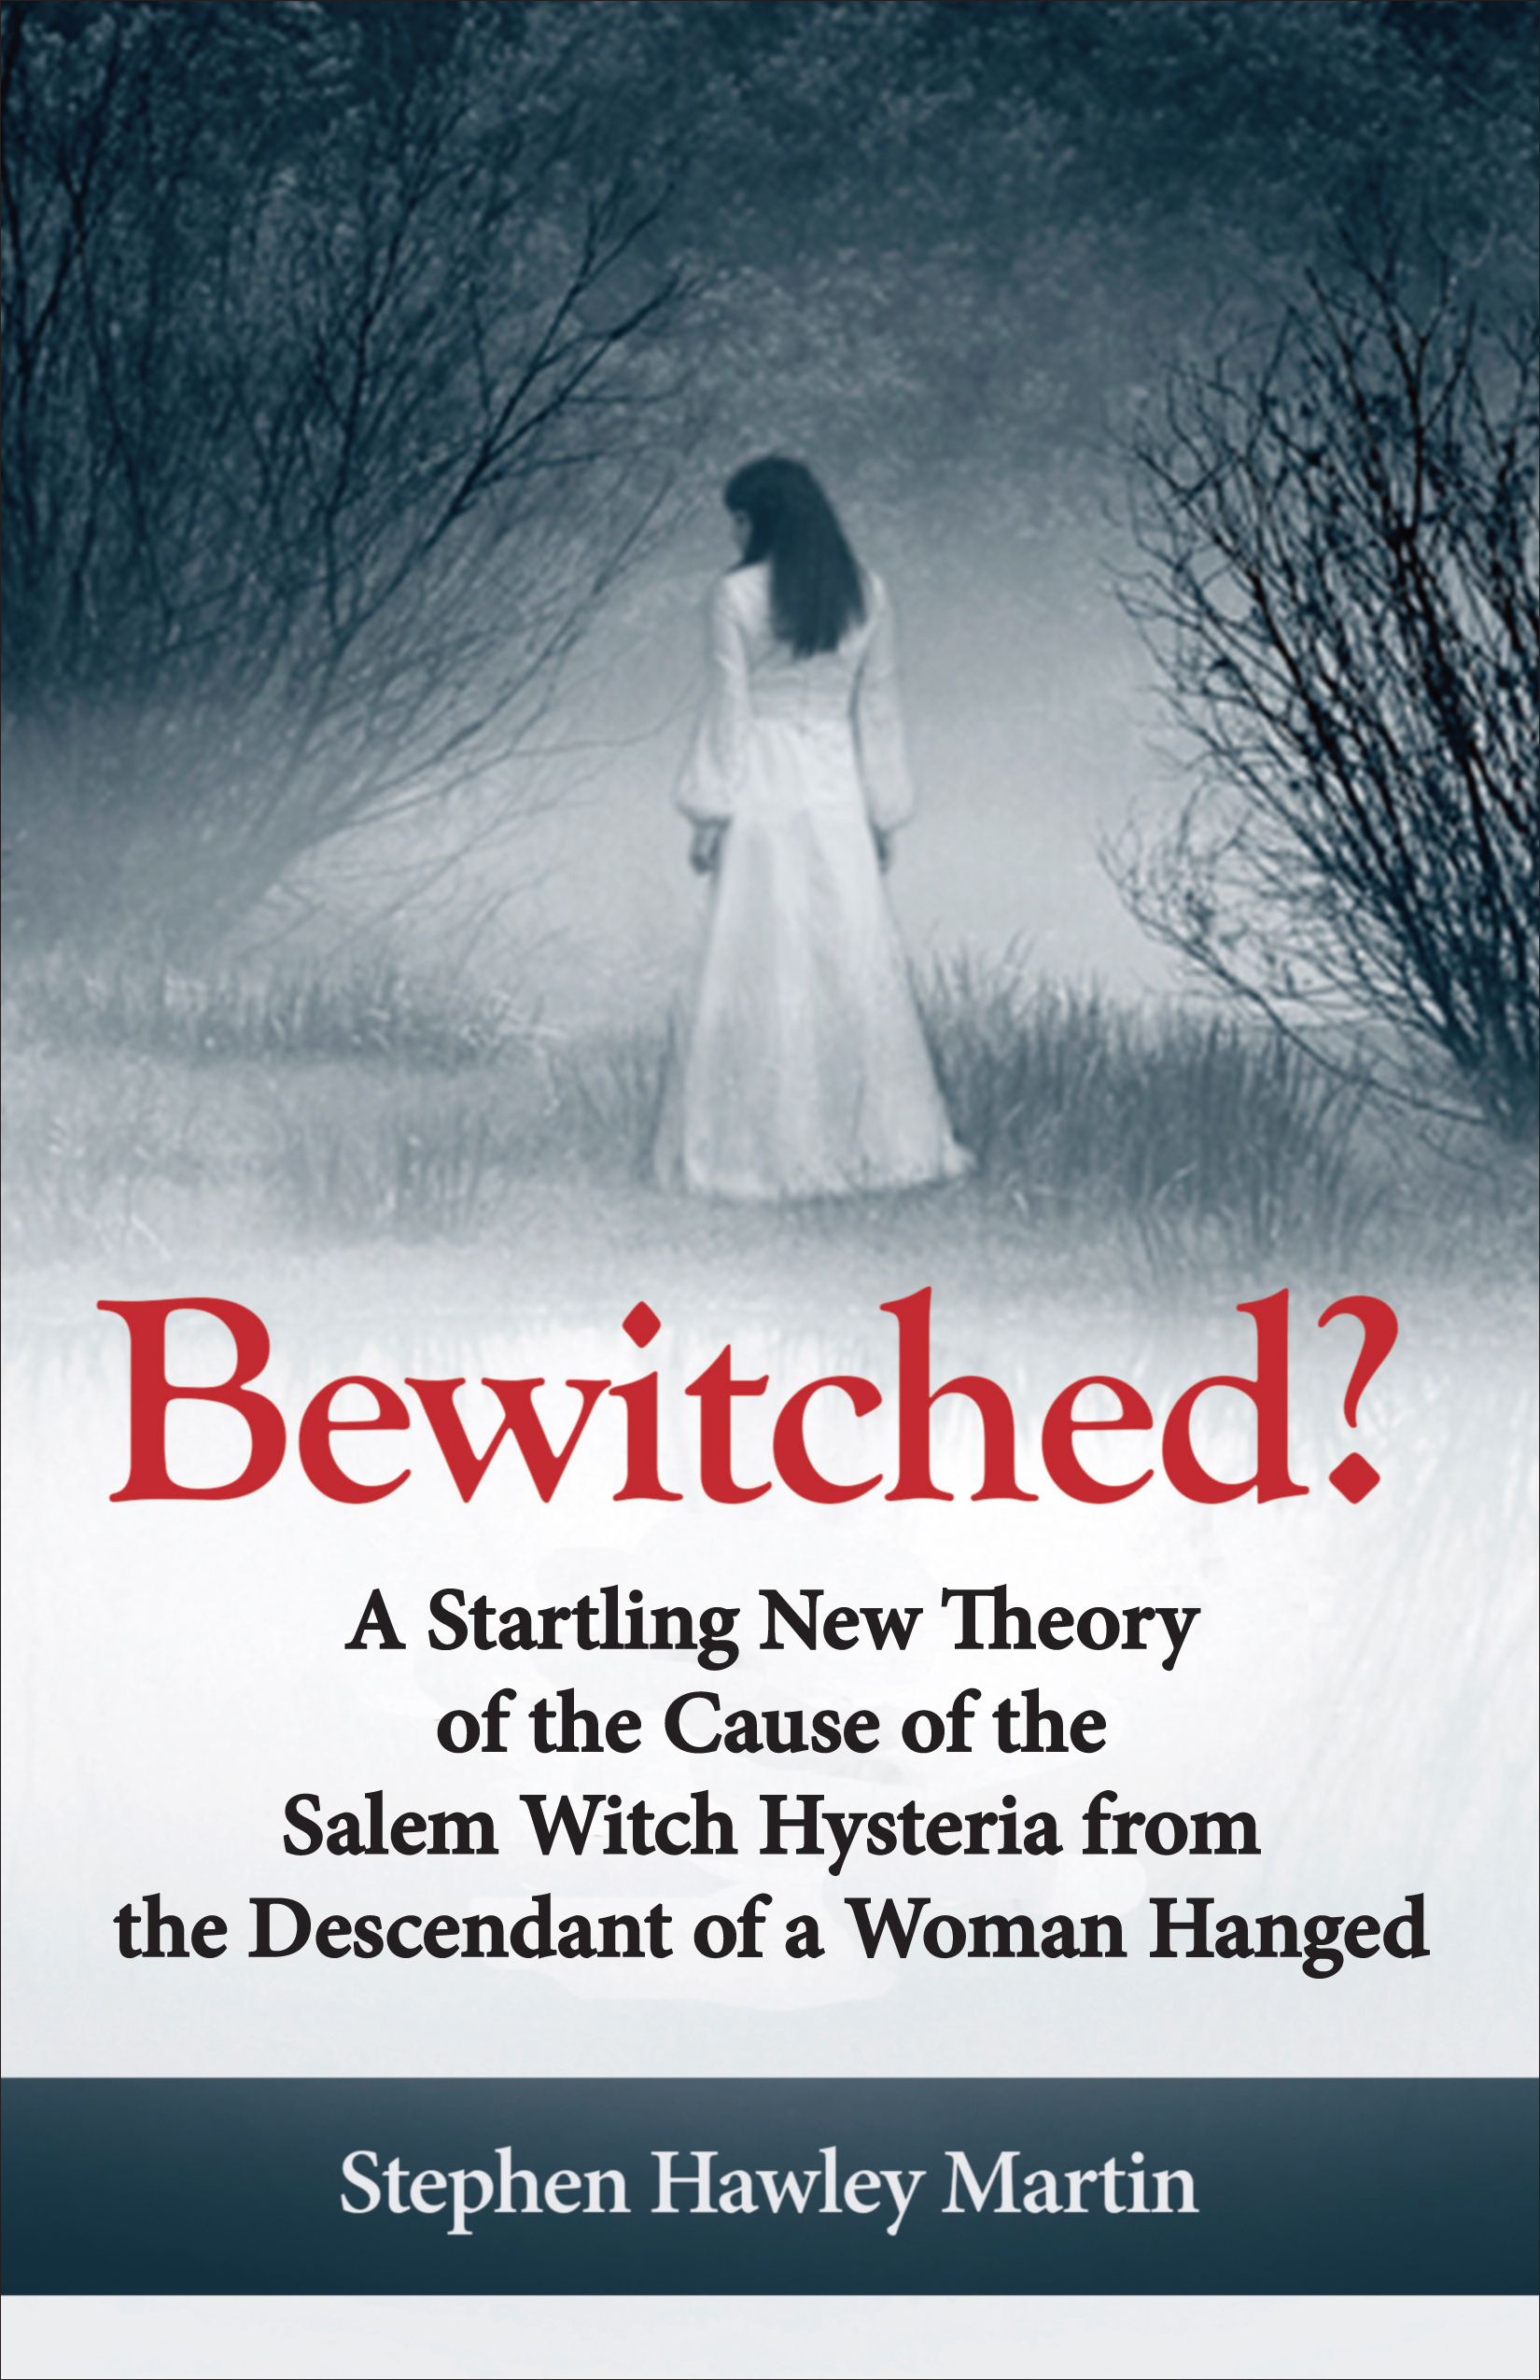 New Book About the Salem Witch Hysteria is Poised to Rewrite History